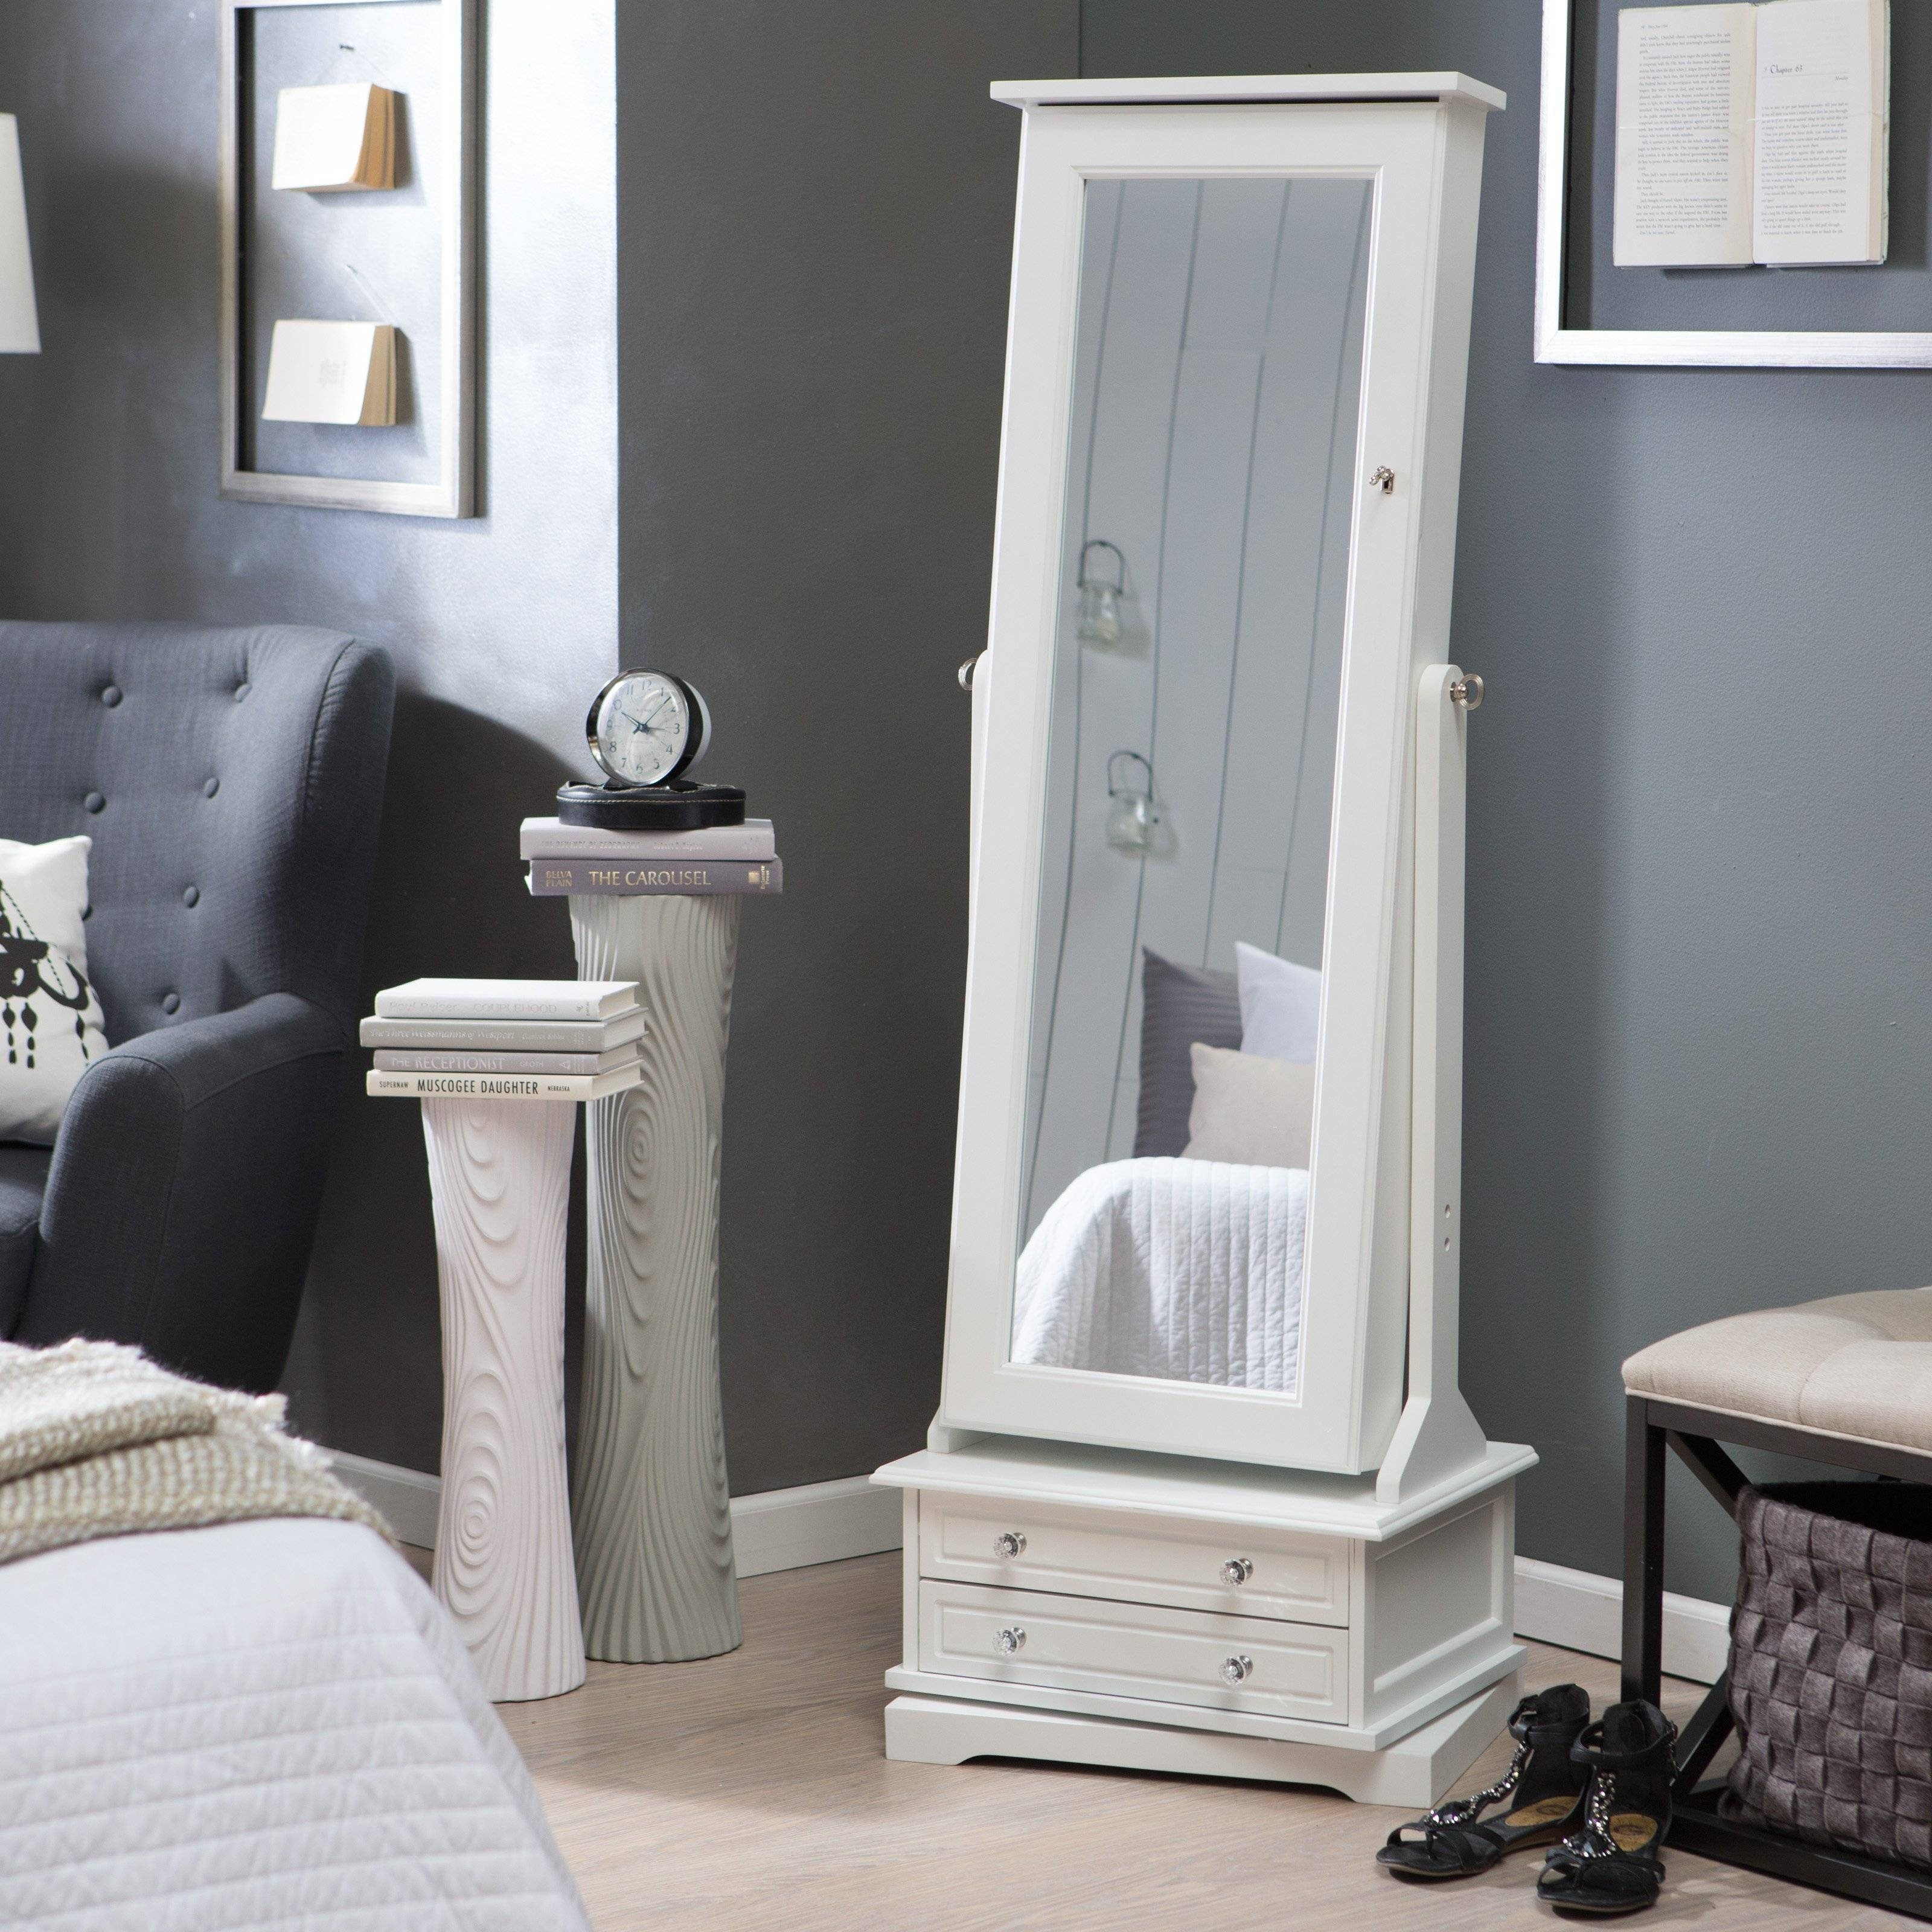 Bedroom Furniture Sets : Ceiling To Floor Large Decorative Mirrors with Full Length Decorative Mirrors (Image 3 of 25)